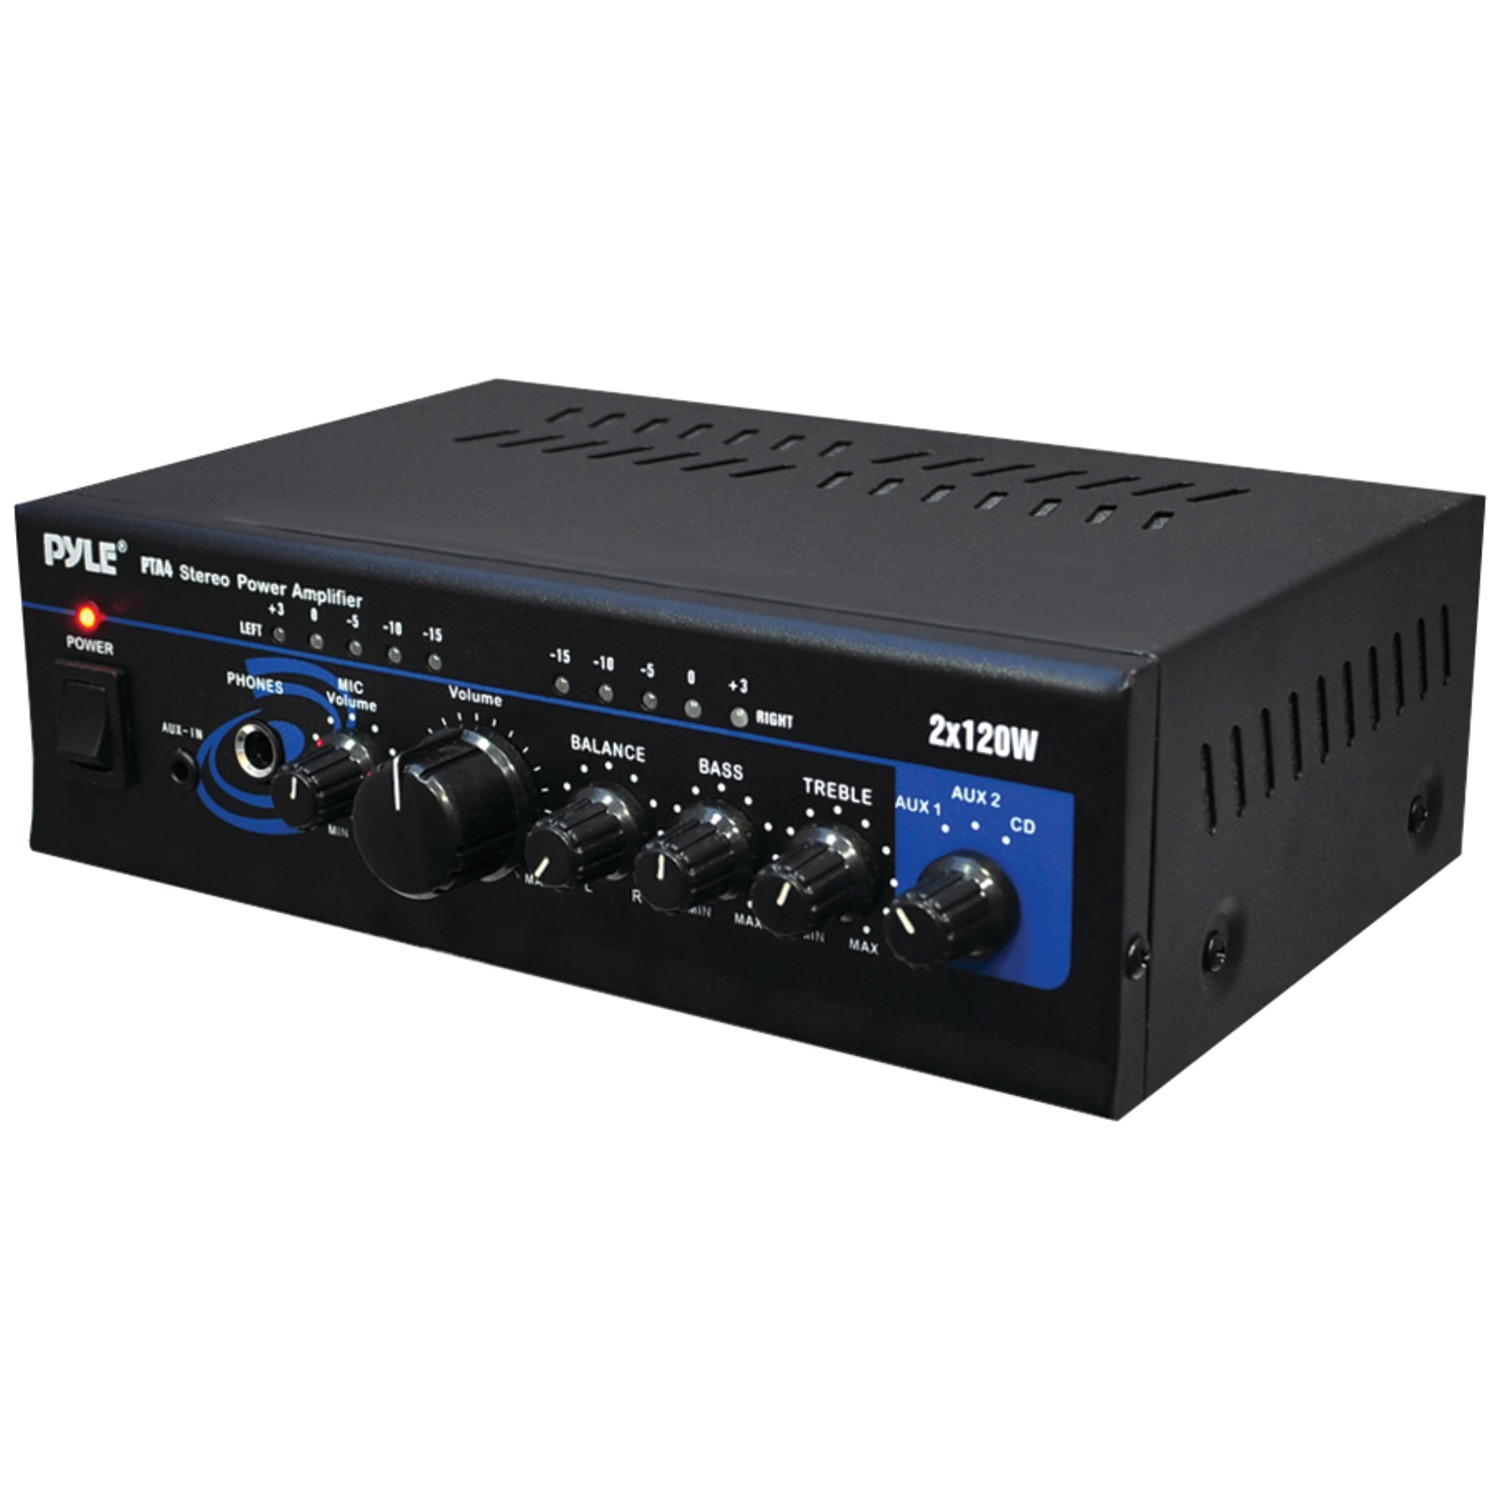 Pyle home pta w mini stereo power amplifier